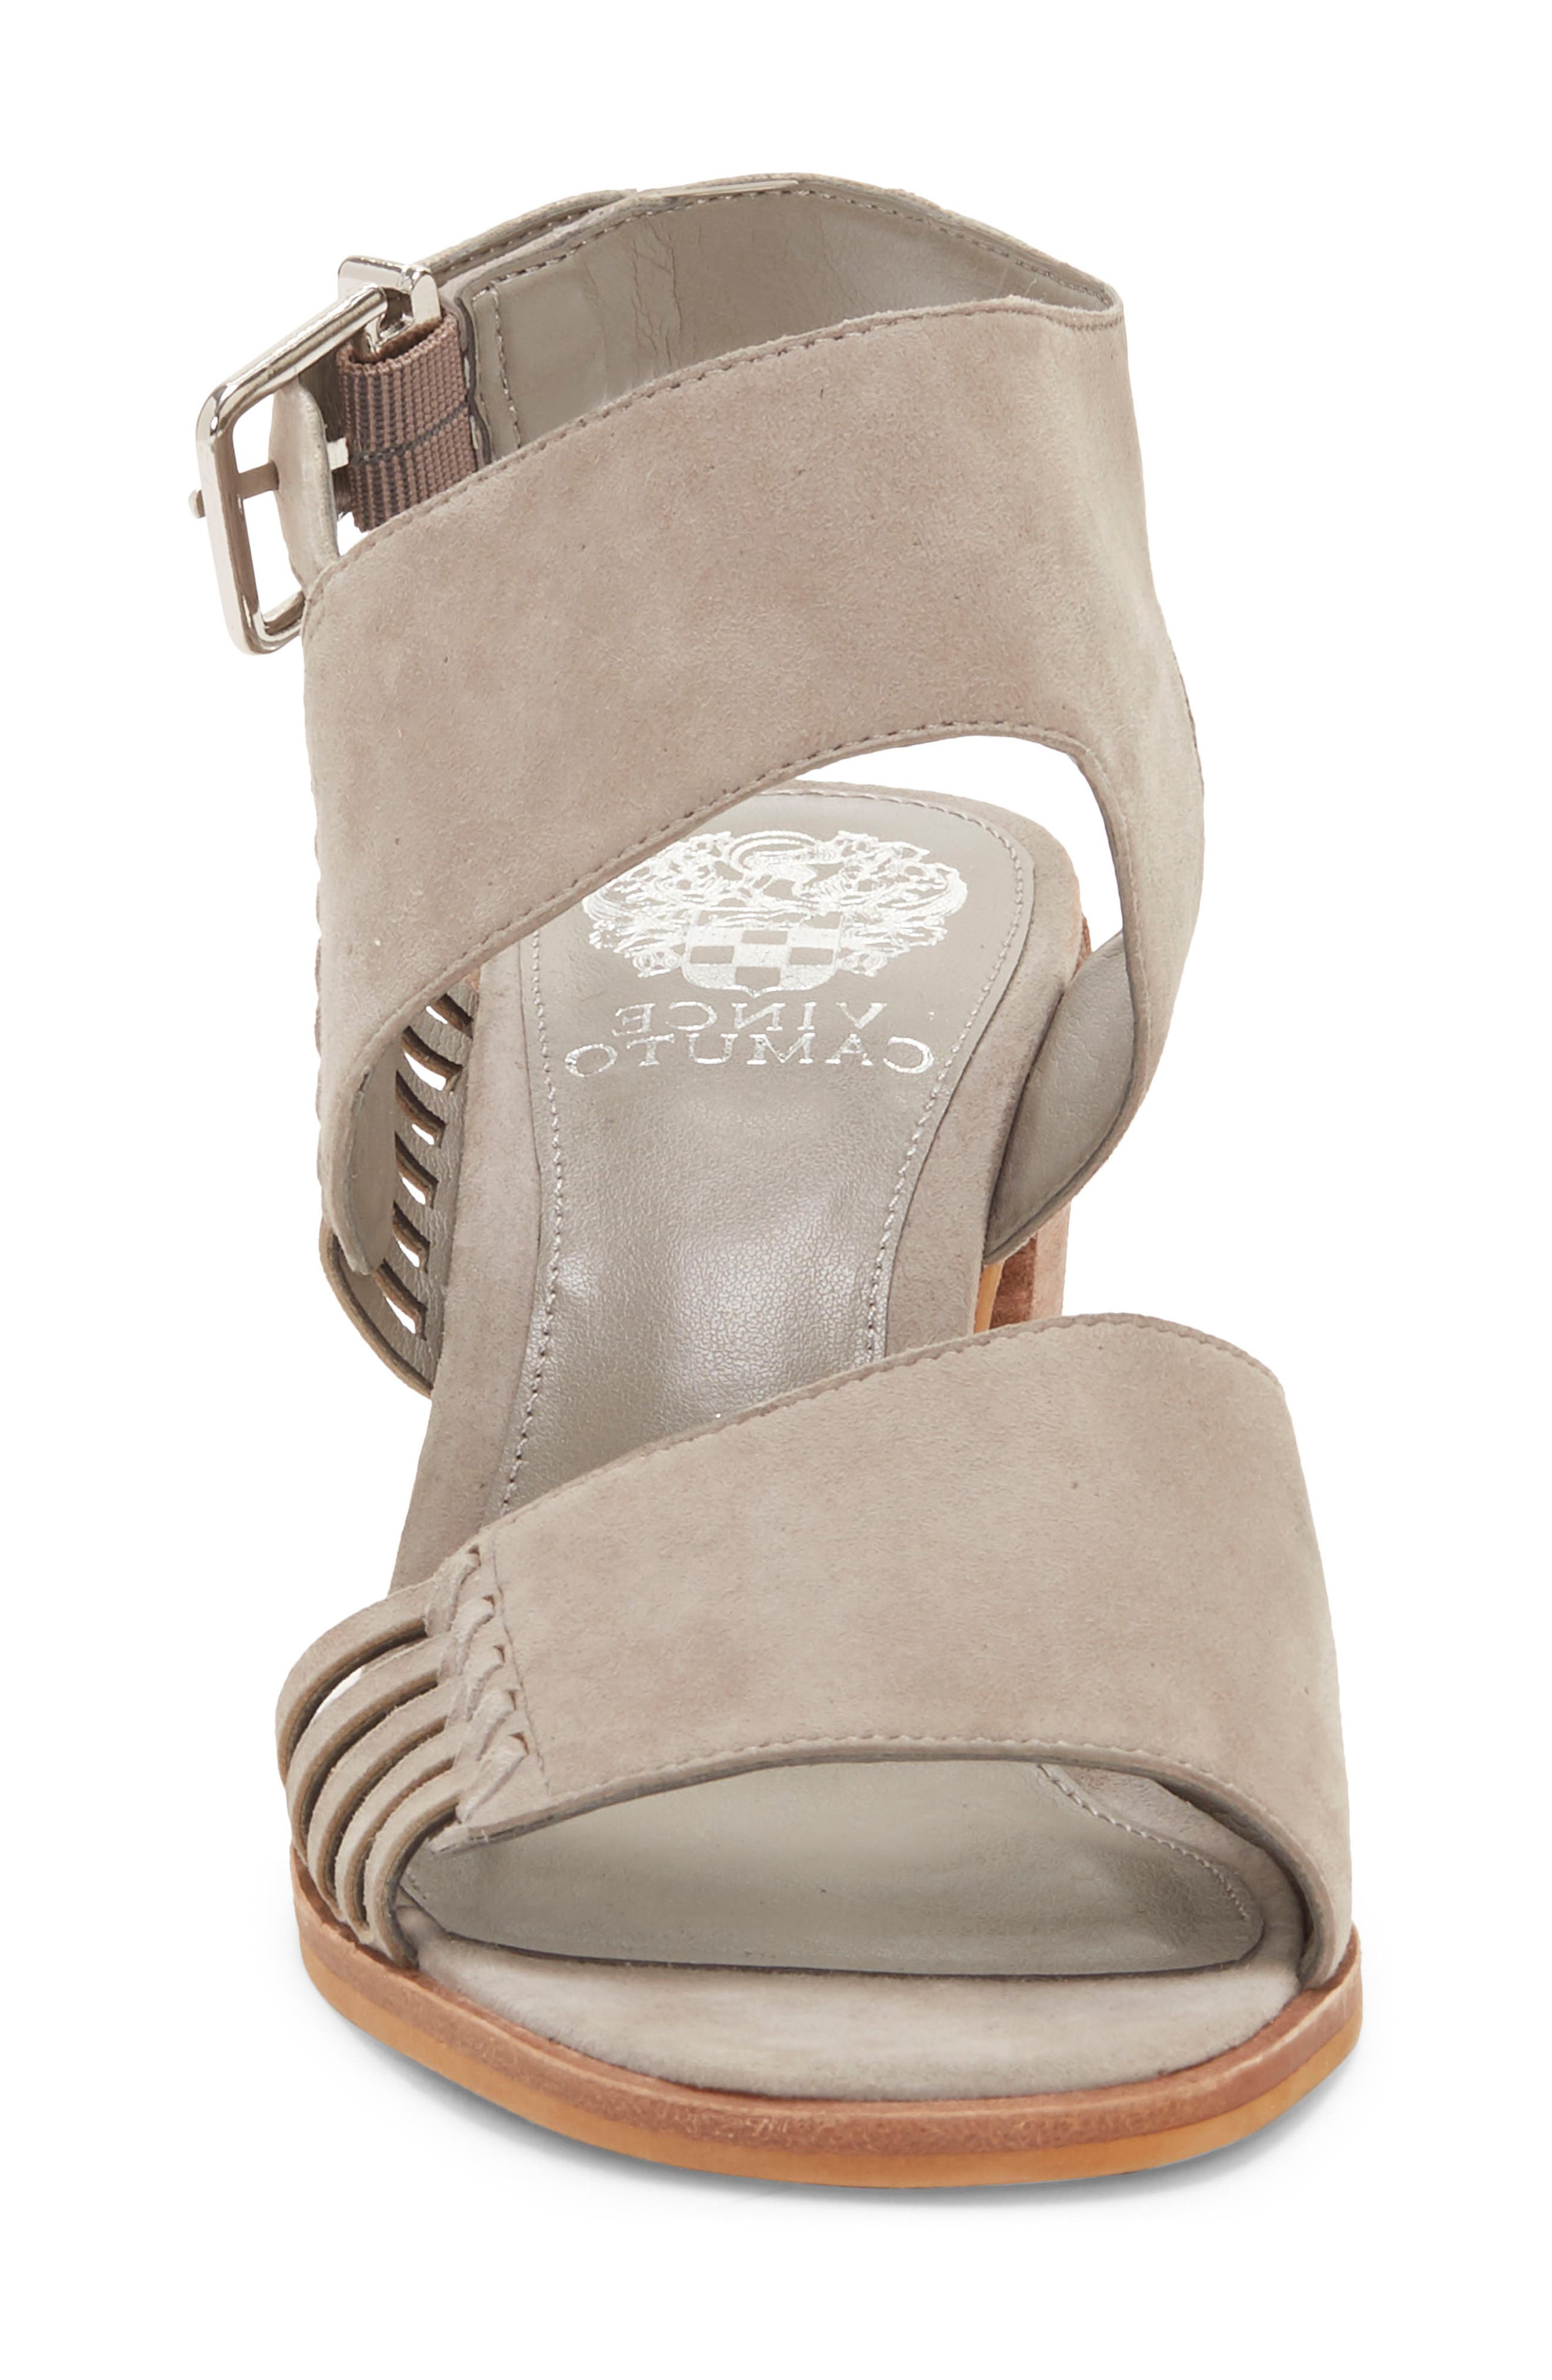 VINCE CAMUTO, Karmelo Slingback Sandal, Alternate thumbnail 4, color, STORM GREY LEATHER